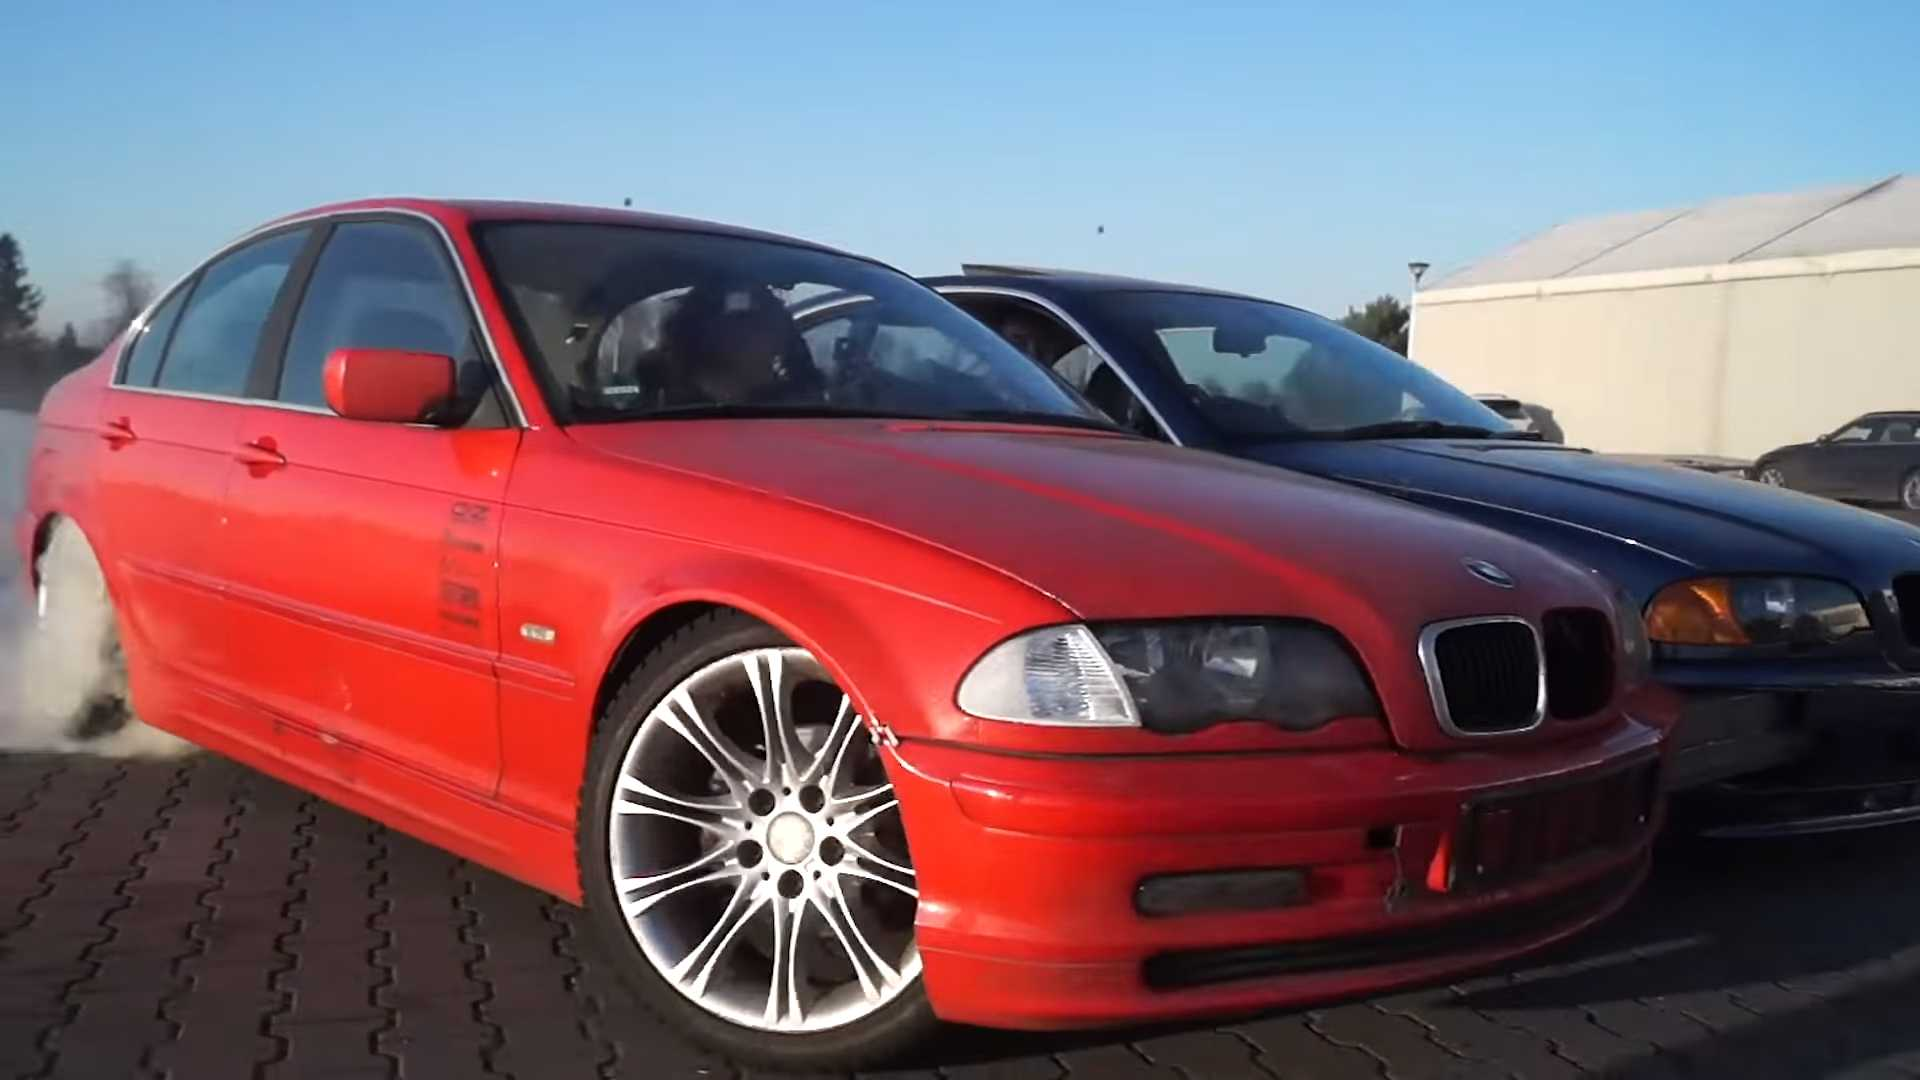 Bonkers Bmw Dual E46 Build Redefines The Term Tandem Drifting